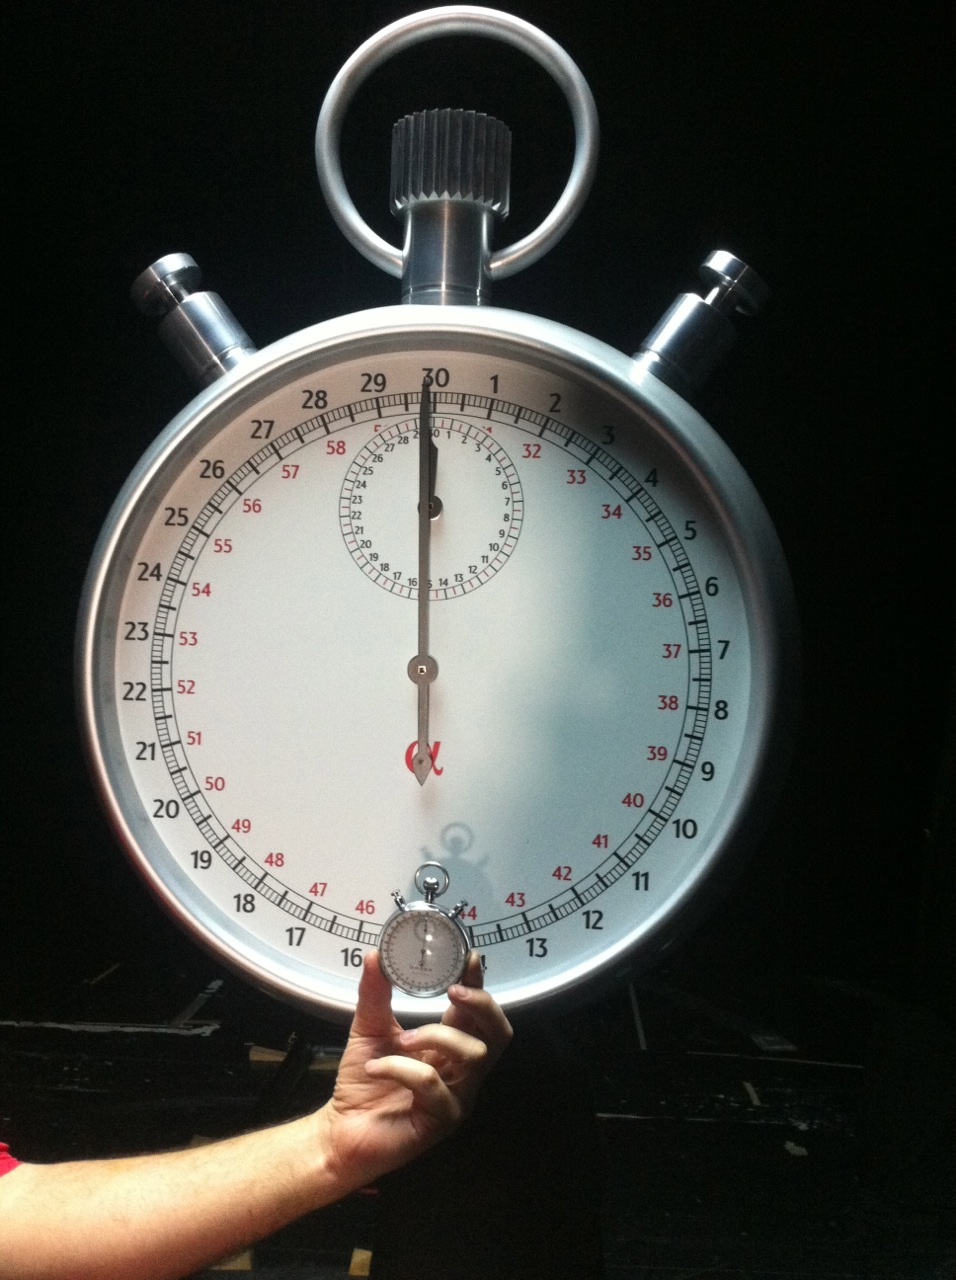 original and oversized prop stopwatch which had double moving hands